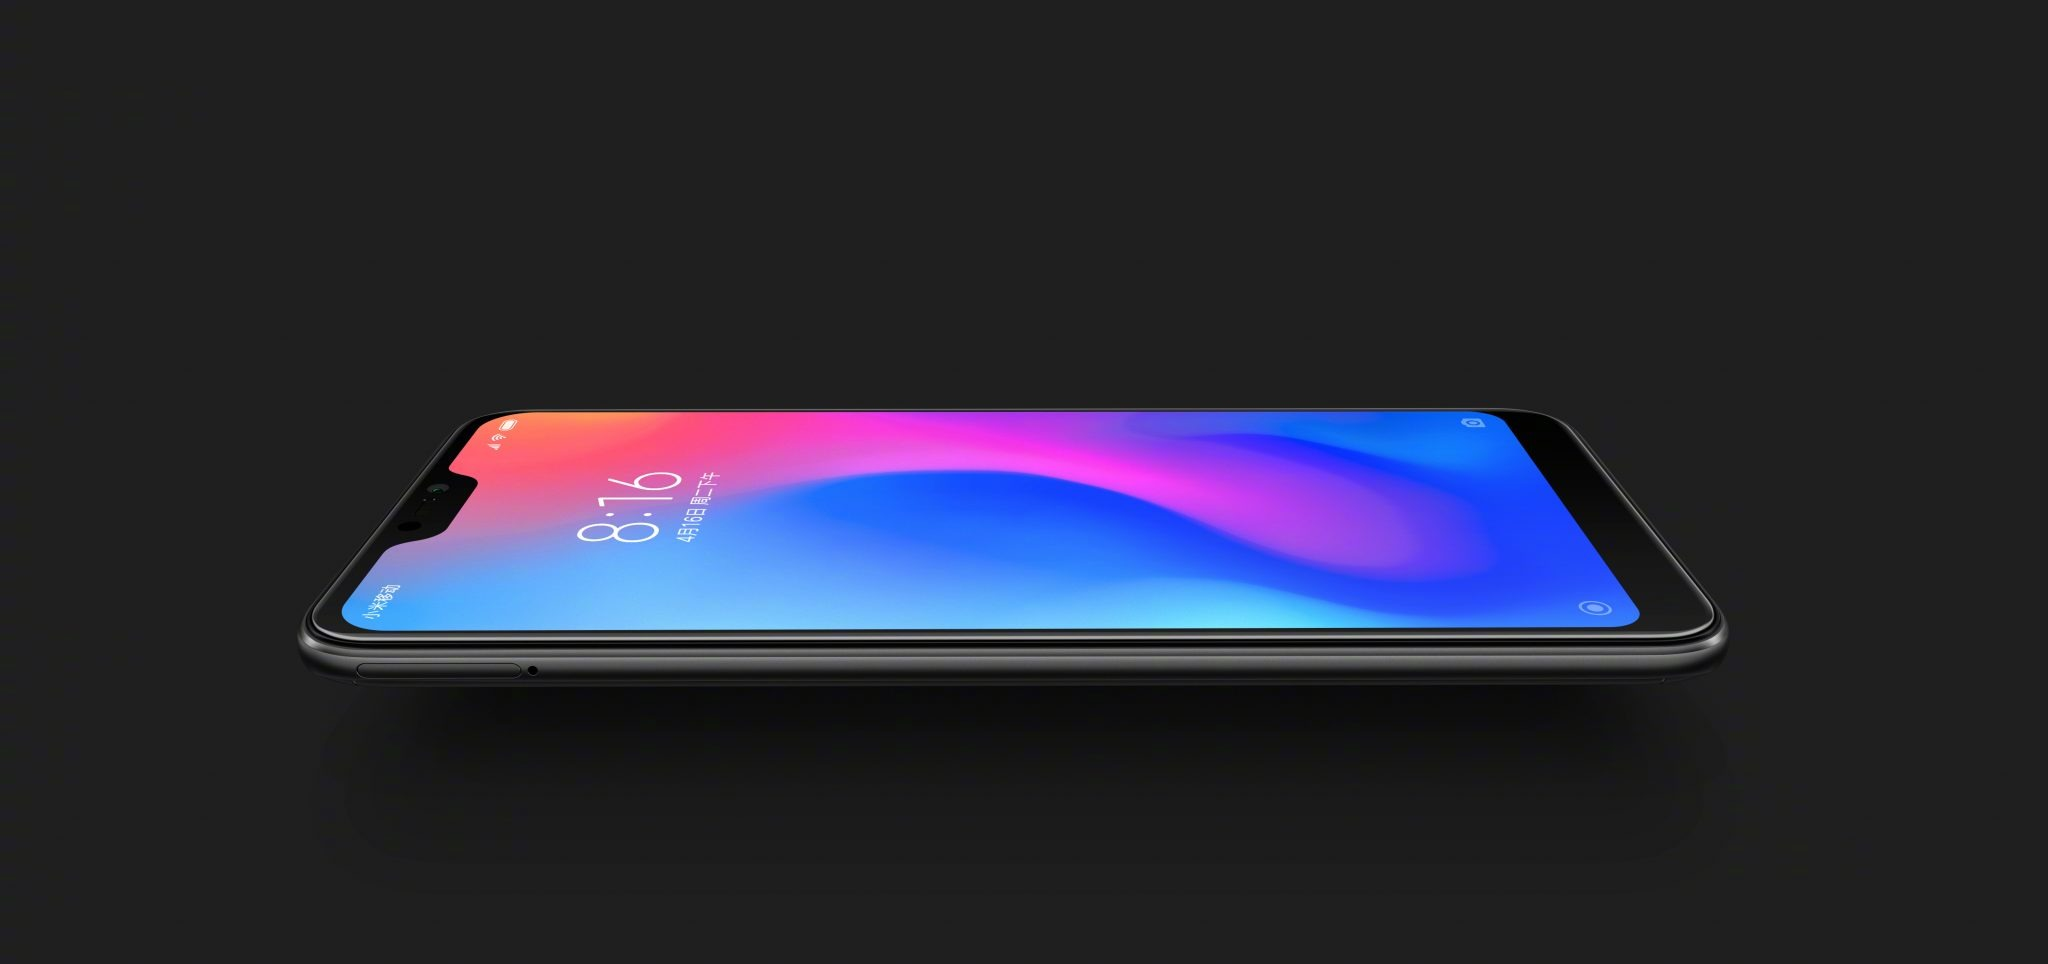 This is the Xiaomi Redmi 6 Pro with a Notch & dual cameras 5